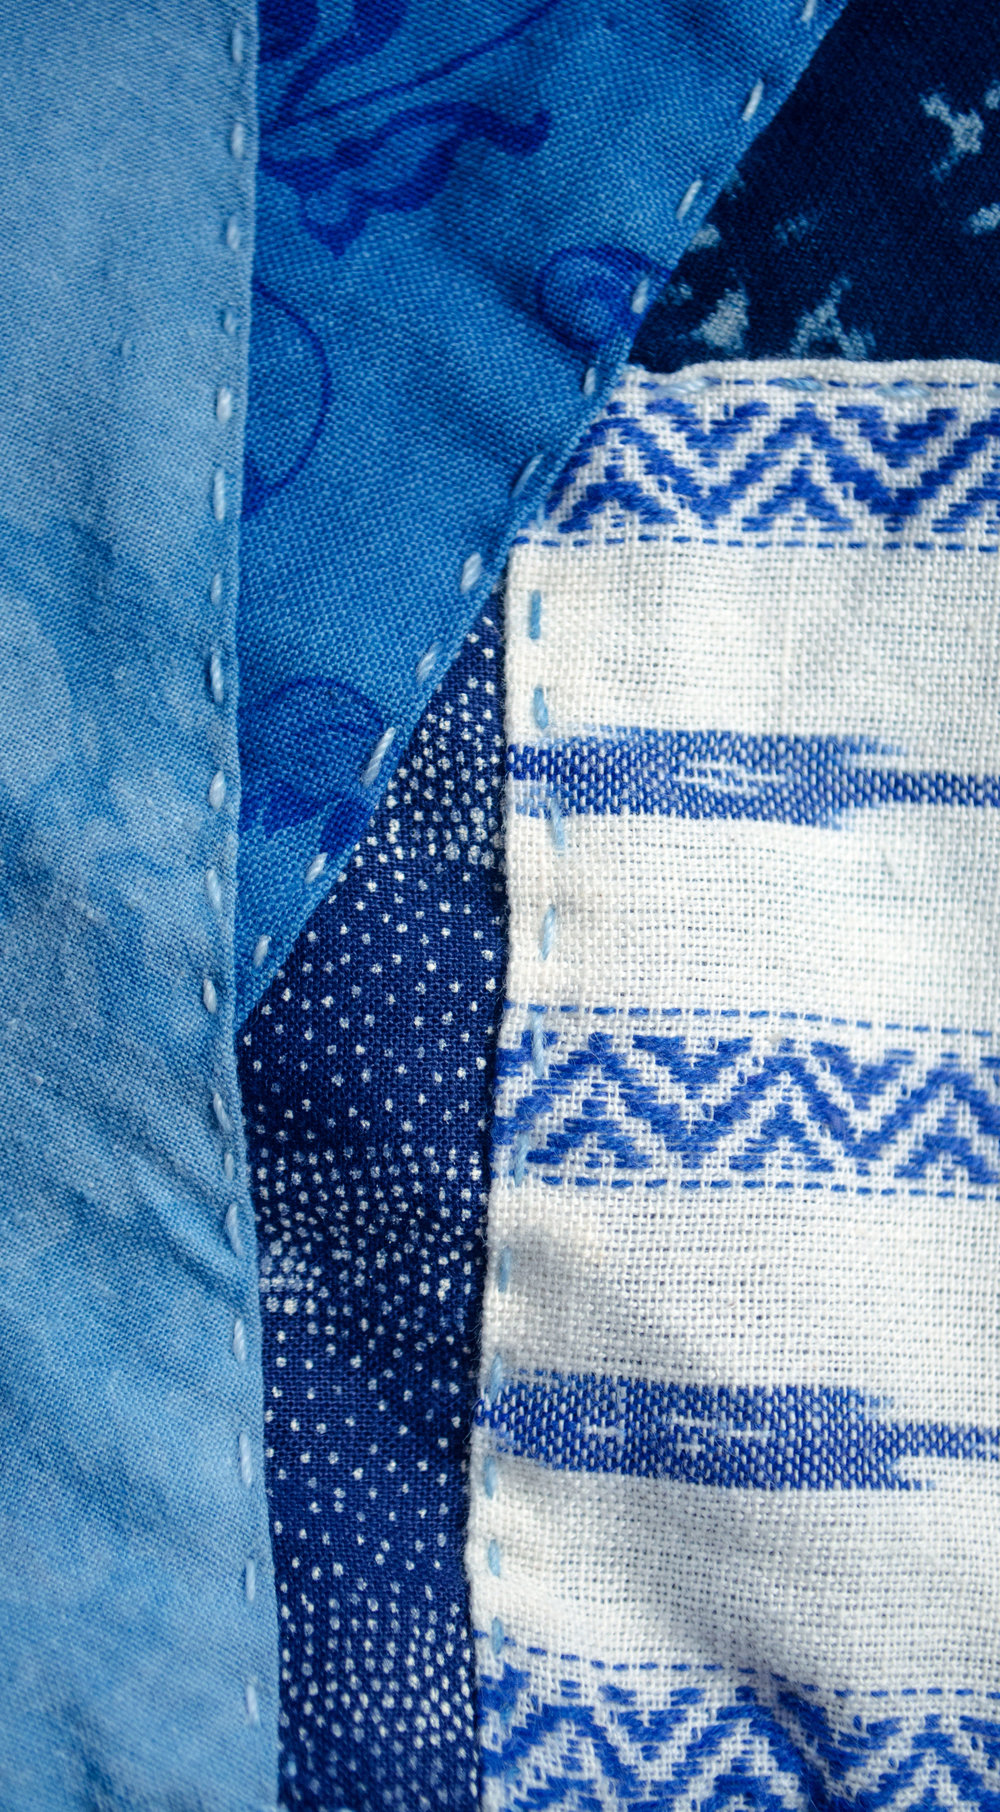 handwoven cotton overdyed and handstitched